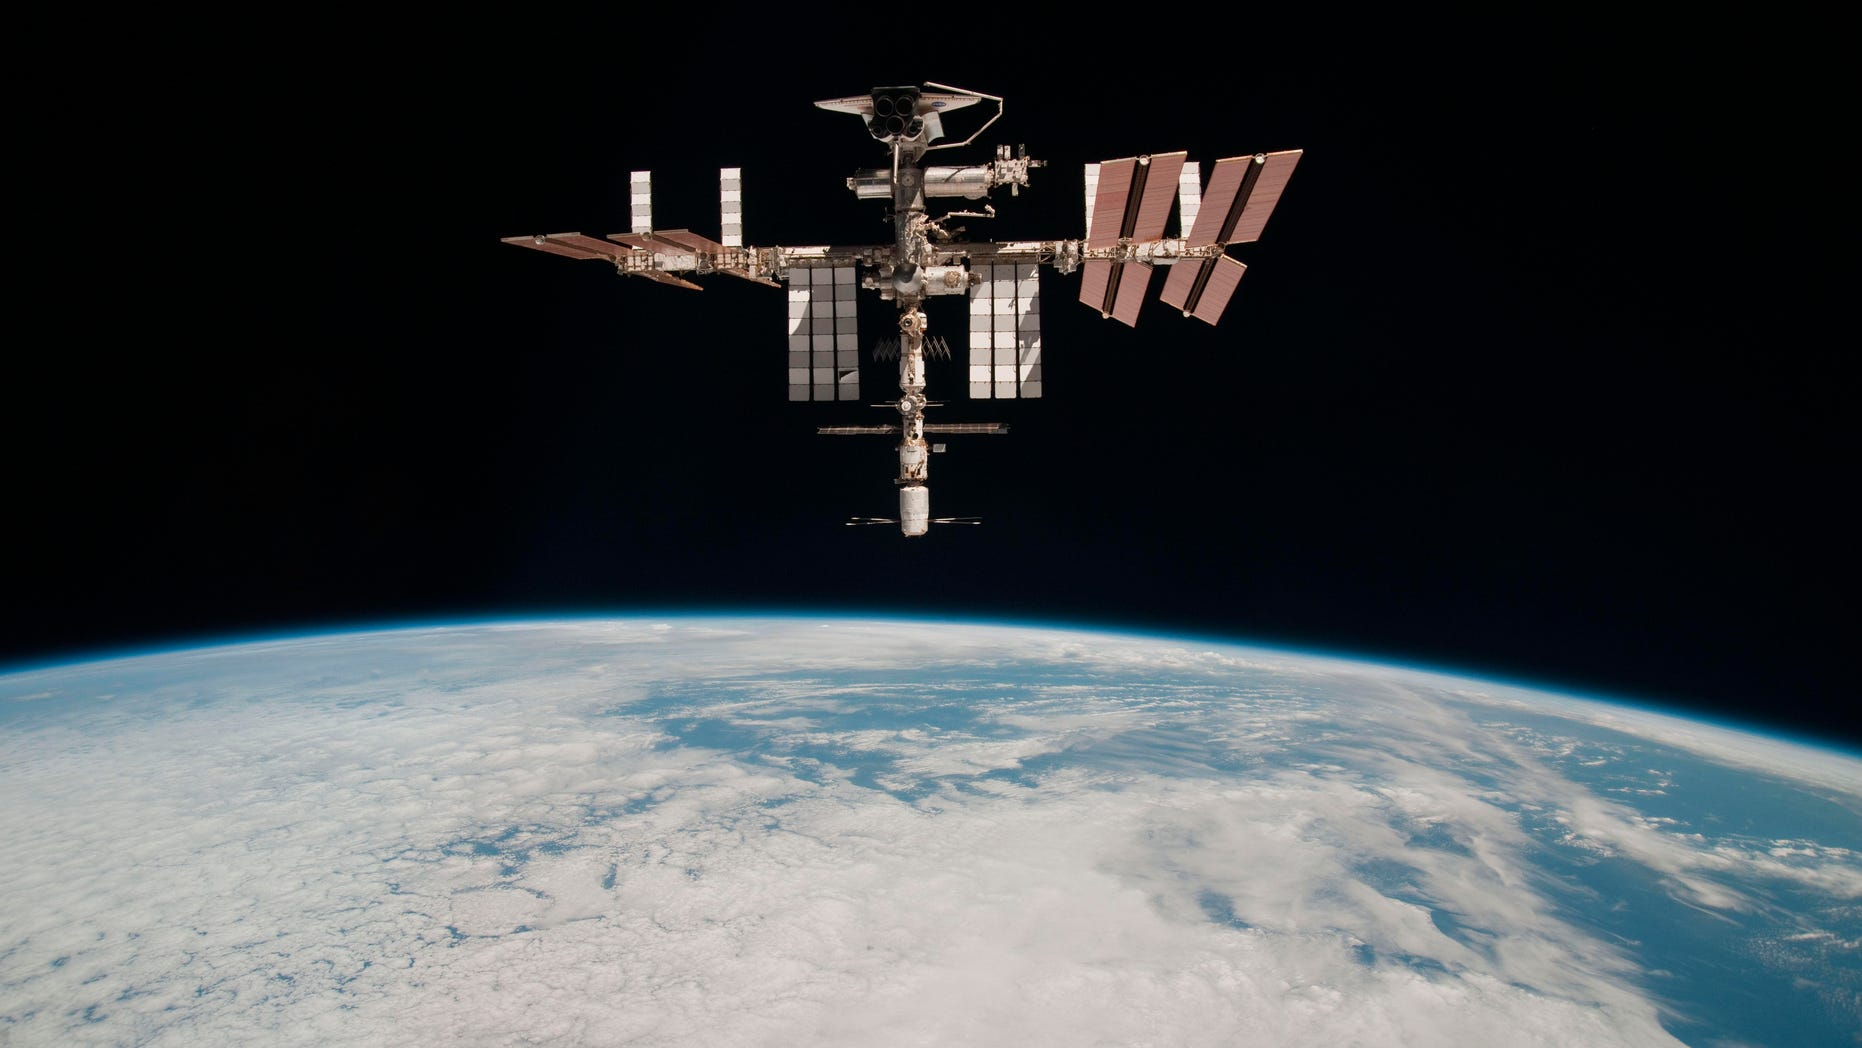 This May 23, 2011 photo released by NASA shows the International Space Station at an altitude of approximately 220 miles above the Earth, taken by Expedition 27 crew member Paolo Nespoli from the Soyuz TMA-20 following its undocking.